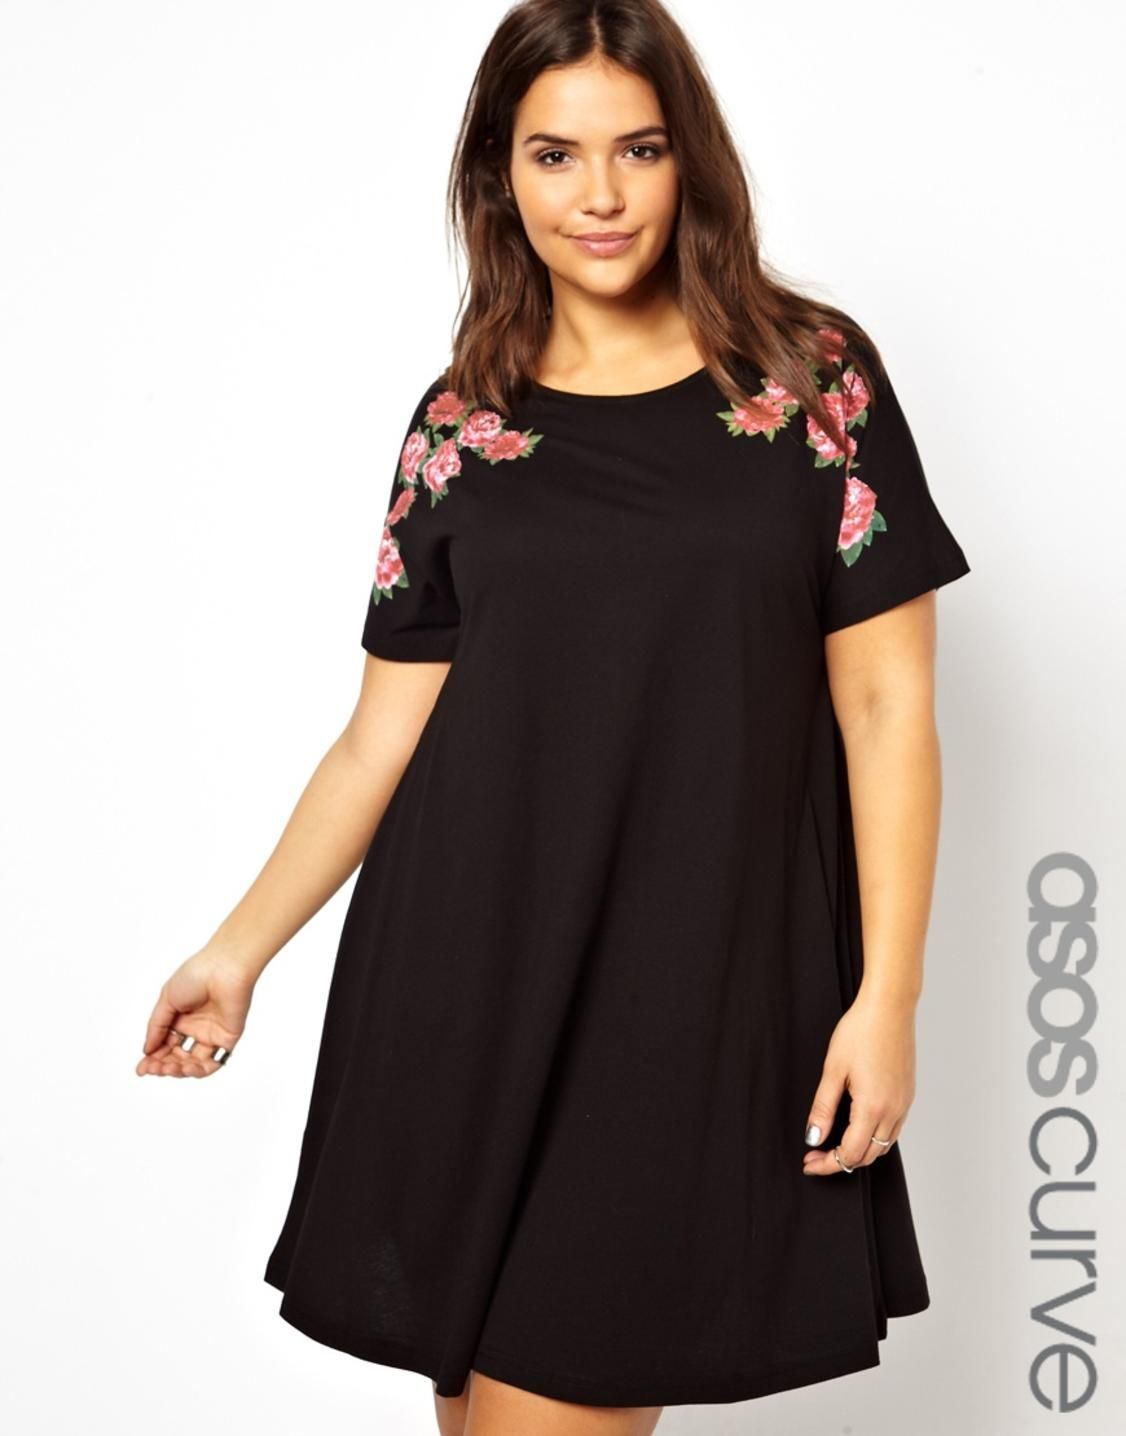 Black plus size swing dress   I would love to have this top ...